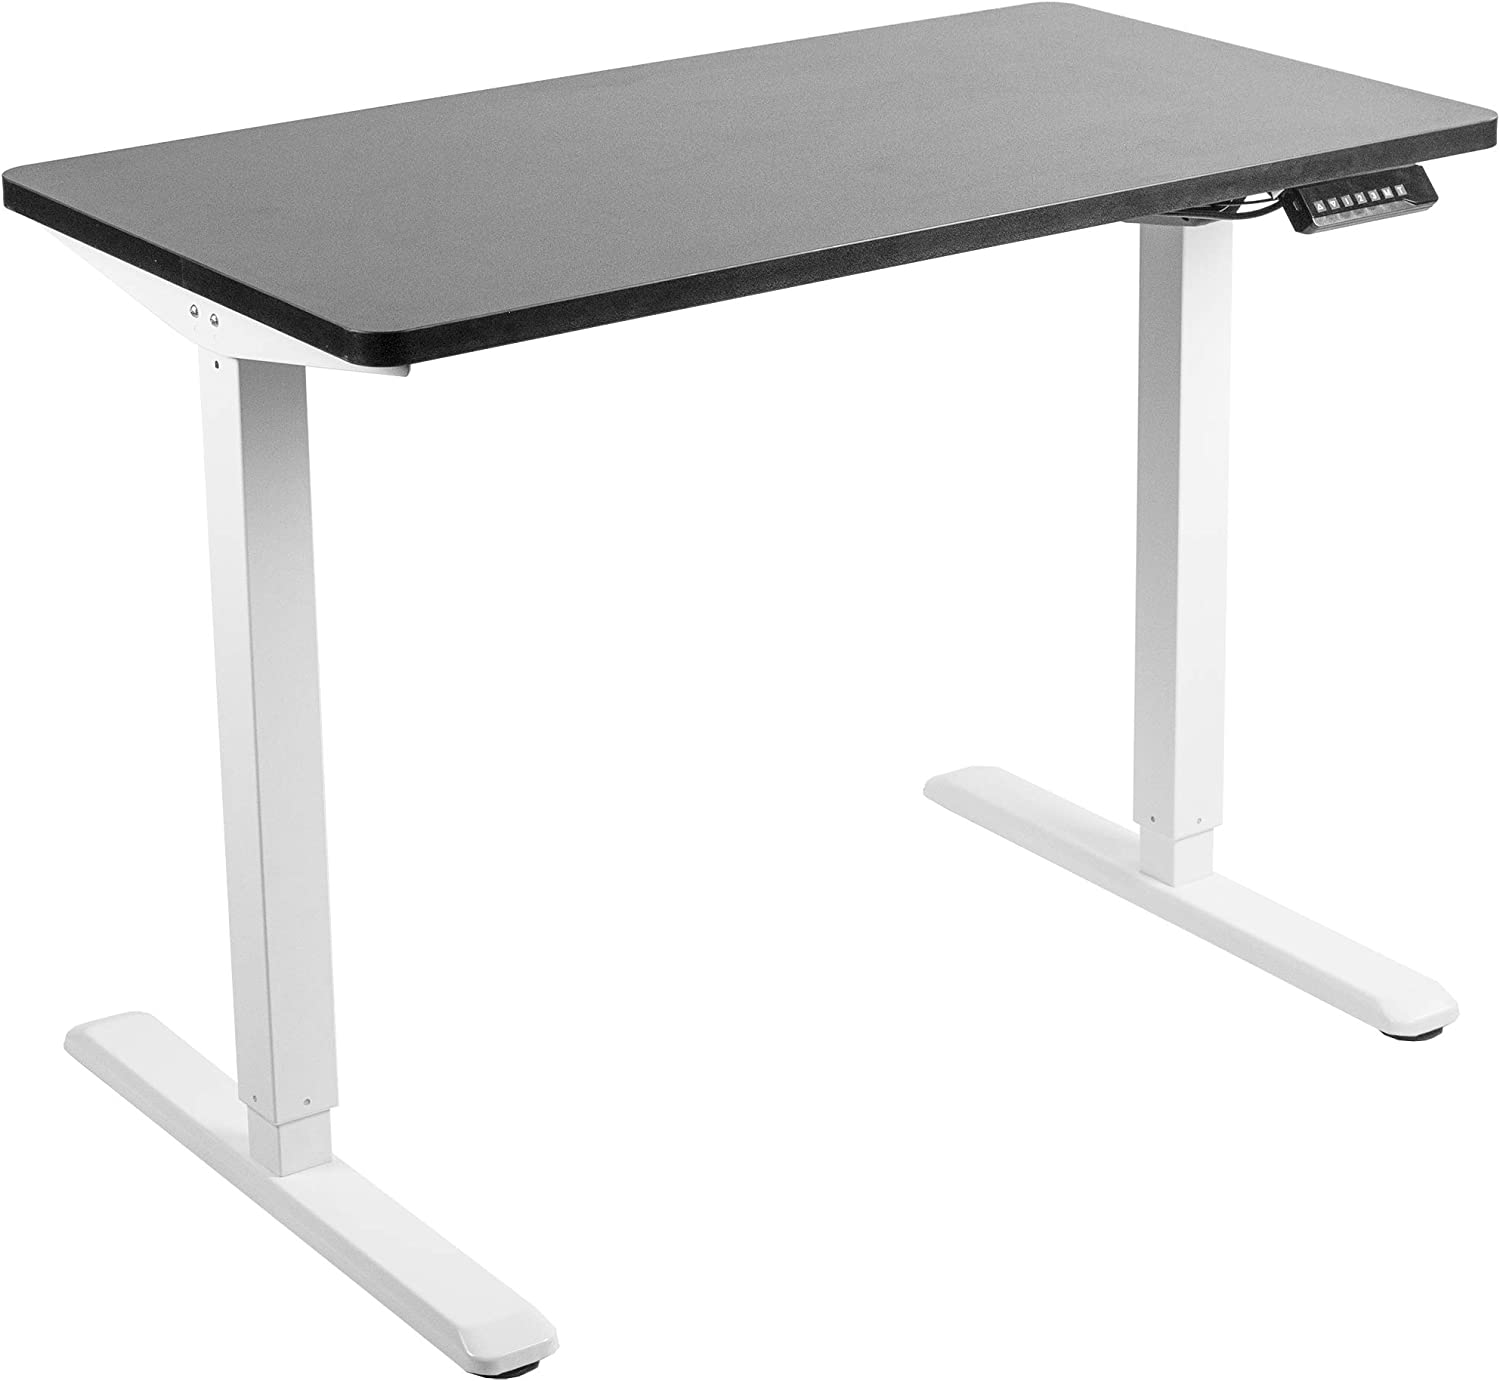 VIVO Electric 43 x 24 inch Stand Up Desk, Black Solid One-Piece Table Top, White Frame, Height Adjustable Standing Workstation with Memory Preset Controller (DESK-KIT-1W4B)